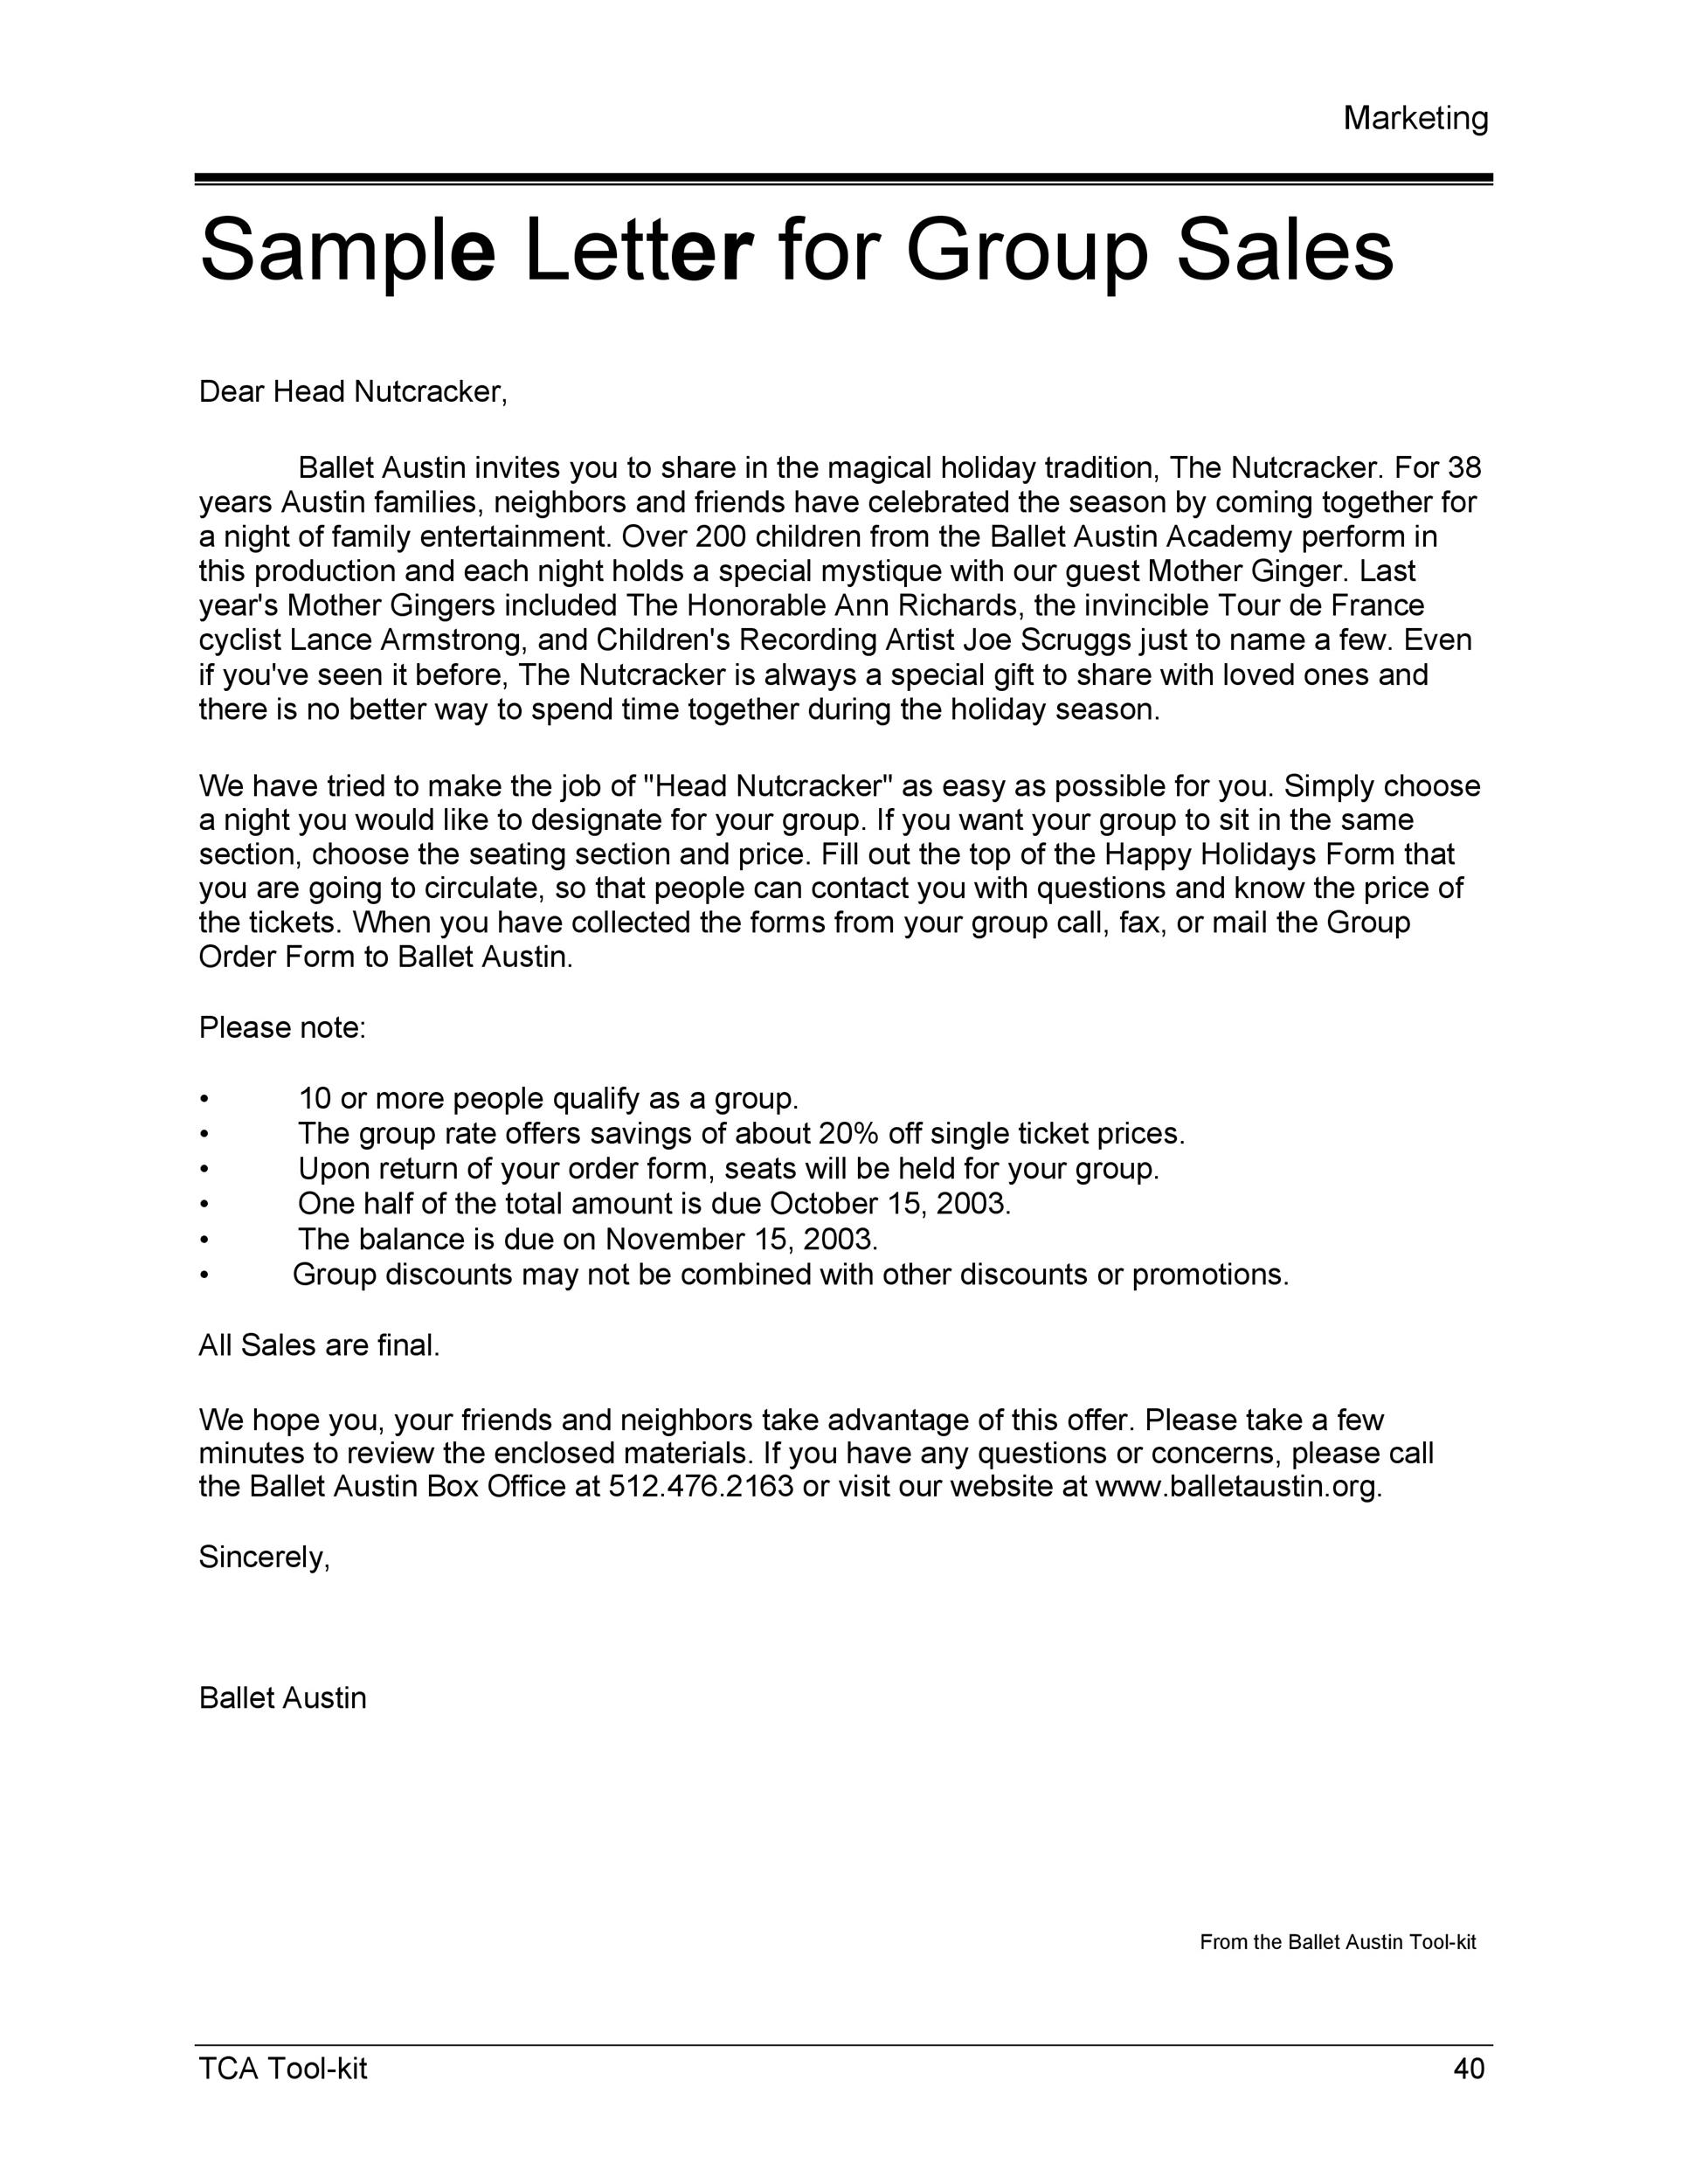 Free sales letter template 20